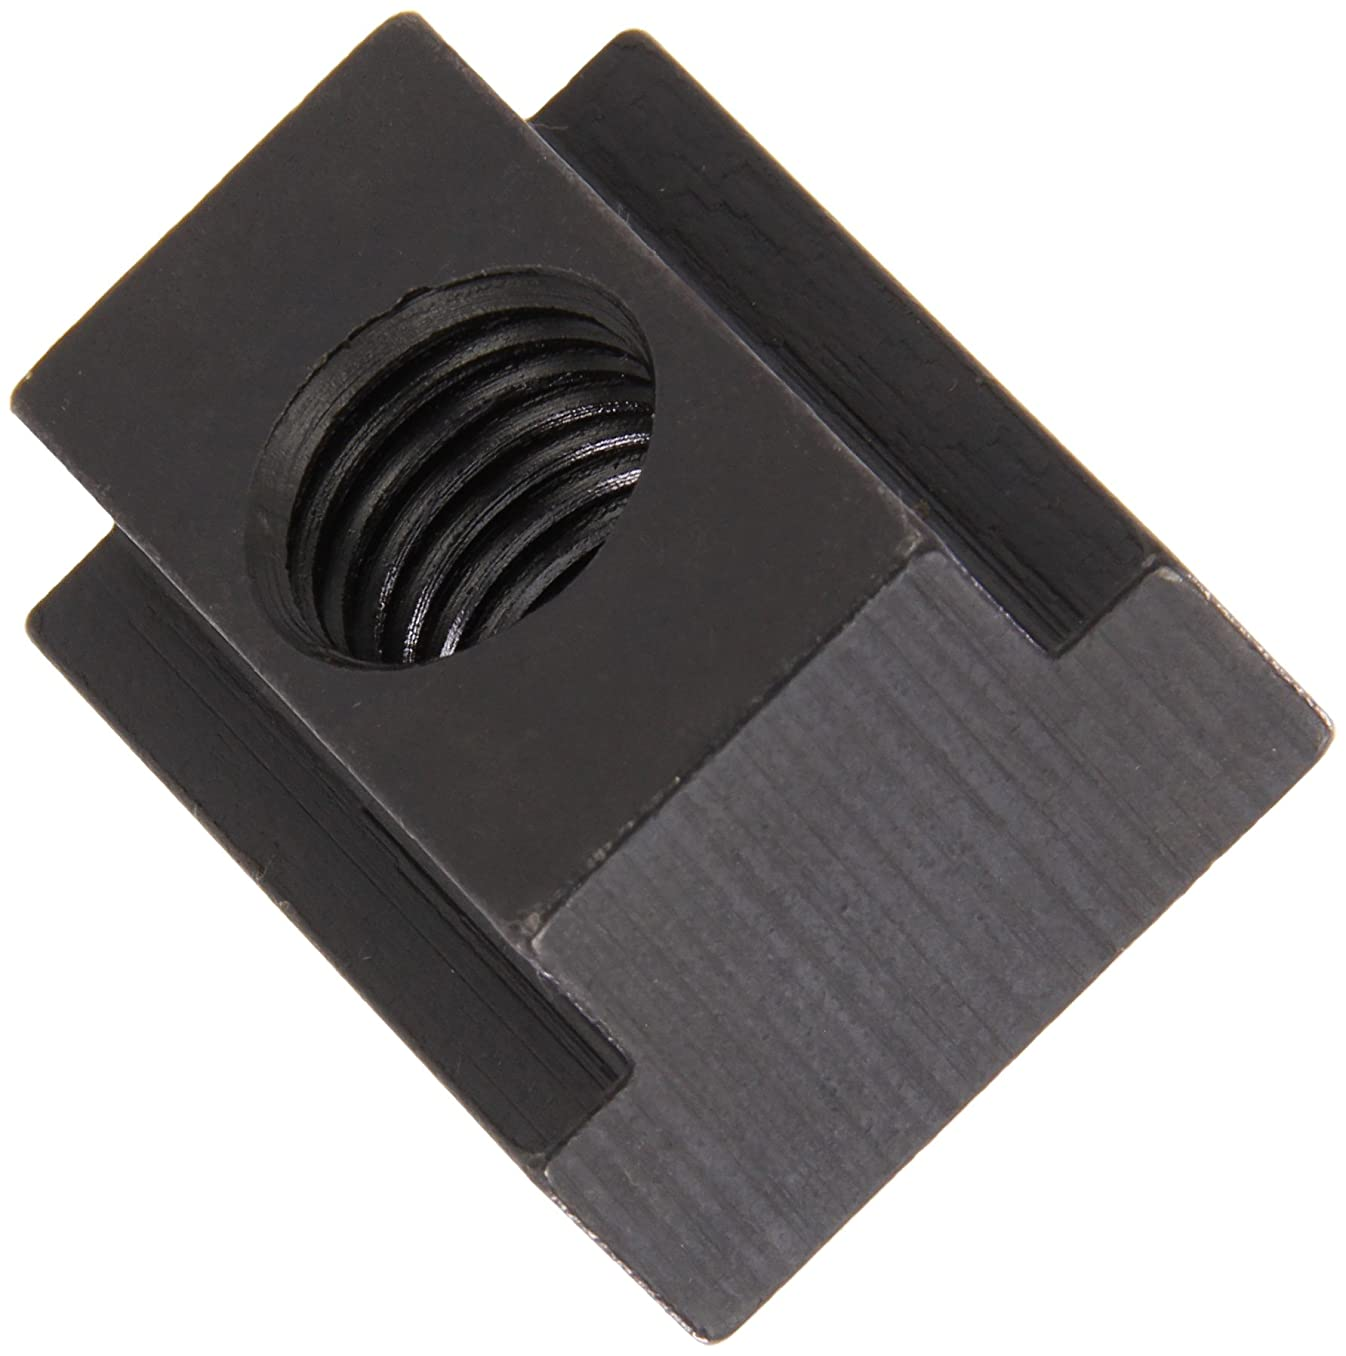 1018 Steel T-Slot Nut, Black Oxide Finish, Tapped Through, 5/16